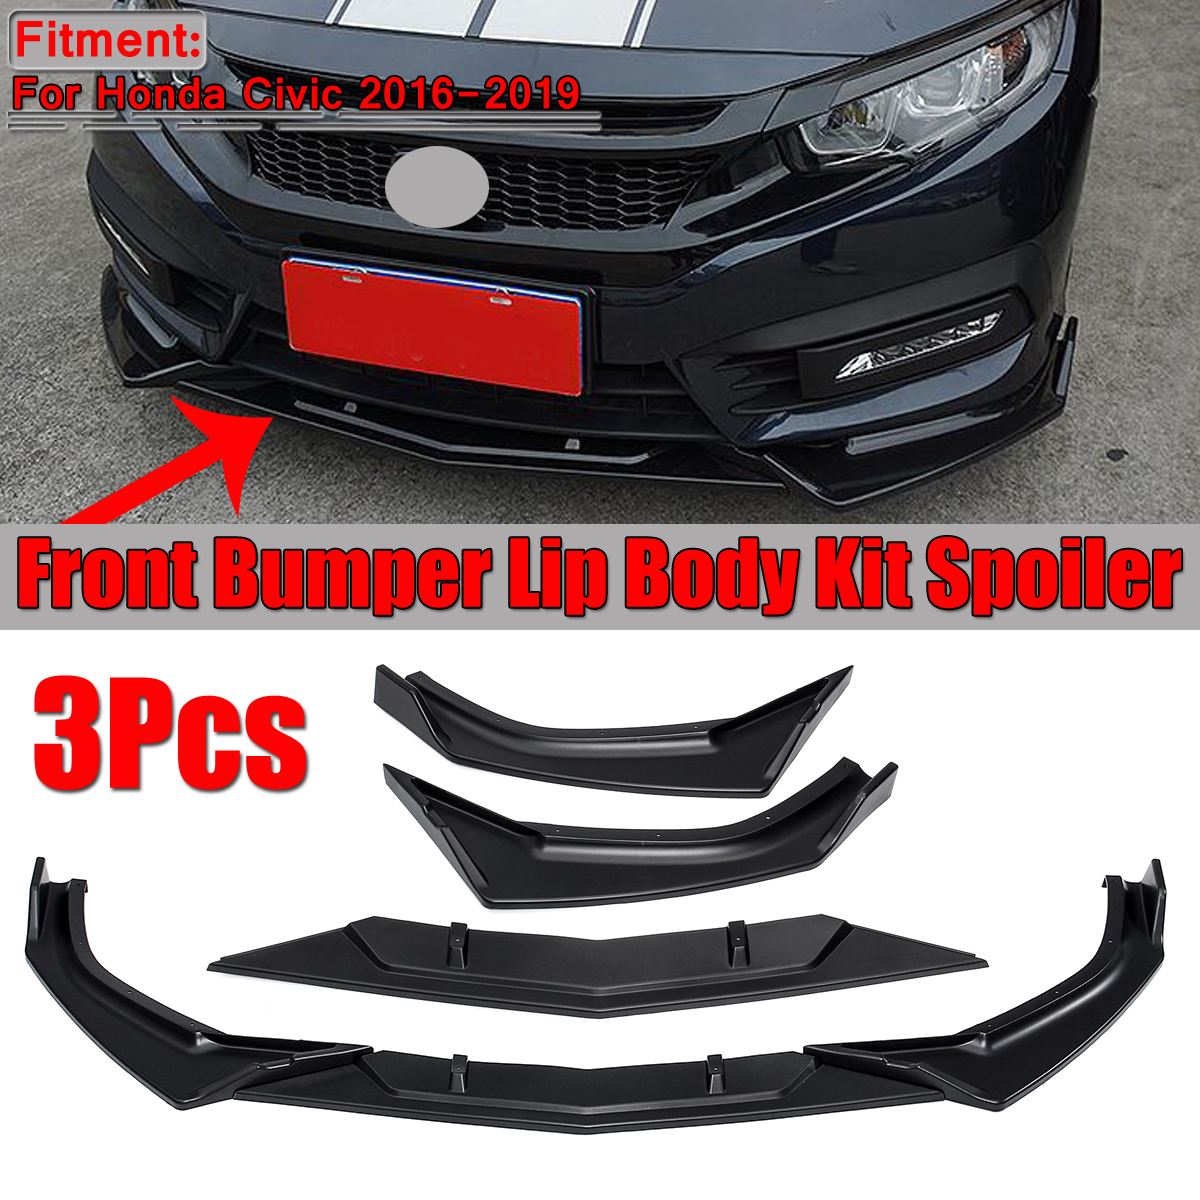 NEW FORD MONDEO 2003-2007 UNDER FRONT BUMPER PROTECTION COVER TRIM